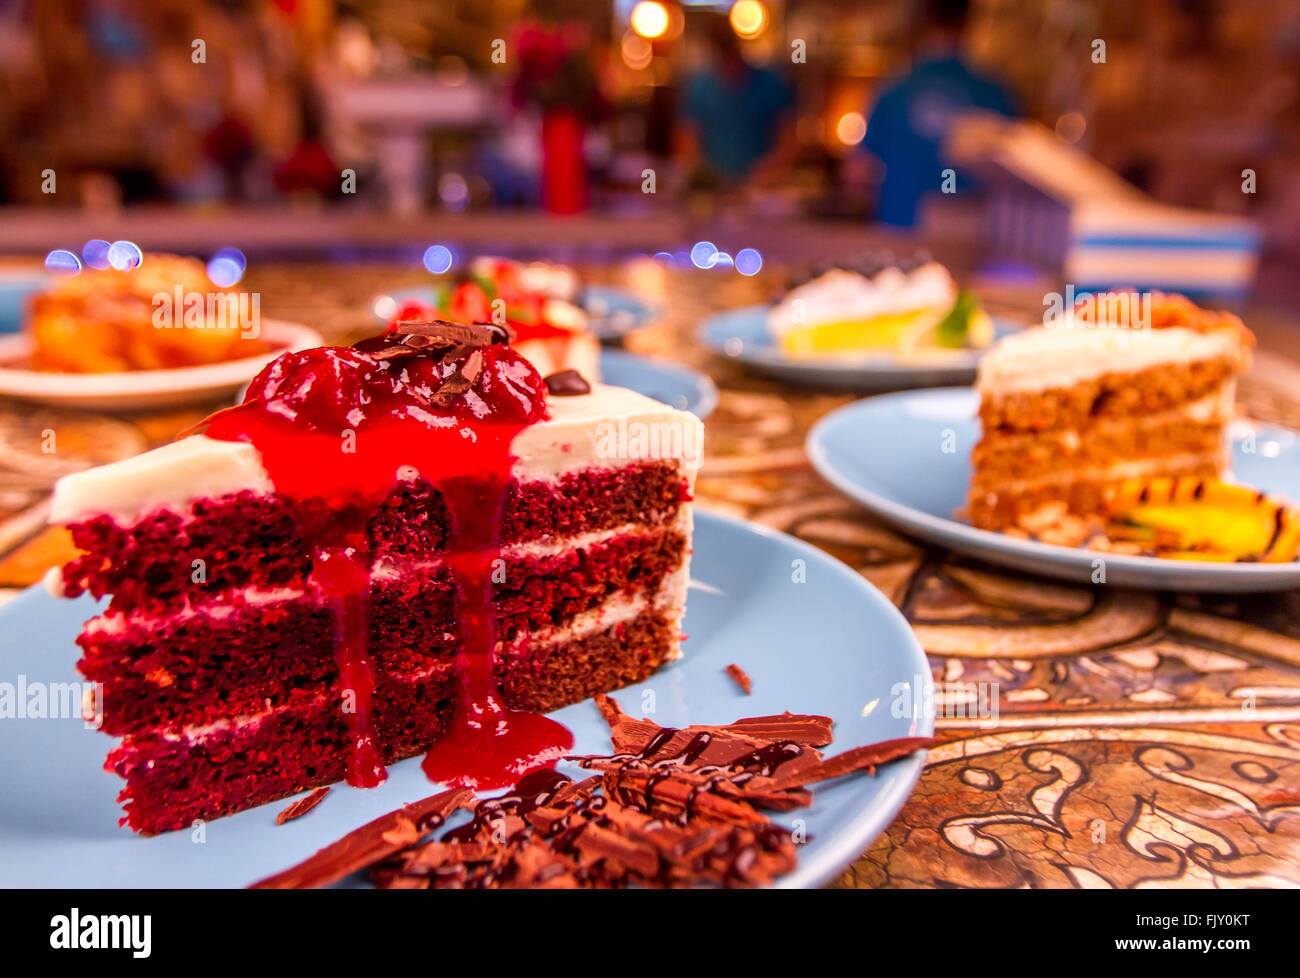 Cakes On Restaurant Table - Stock Image